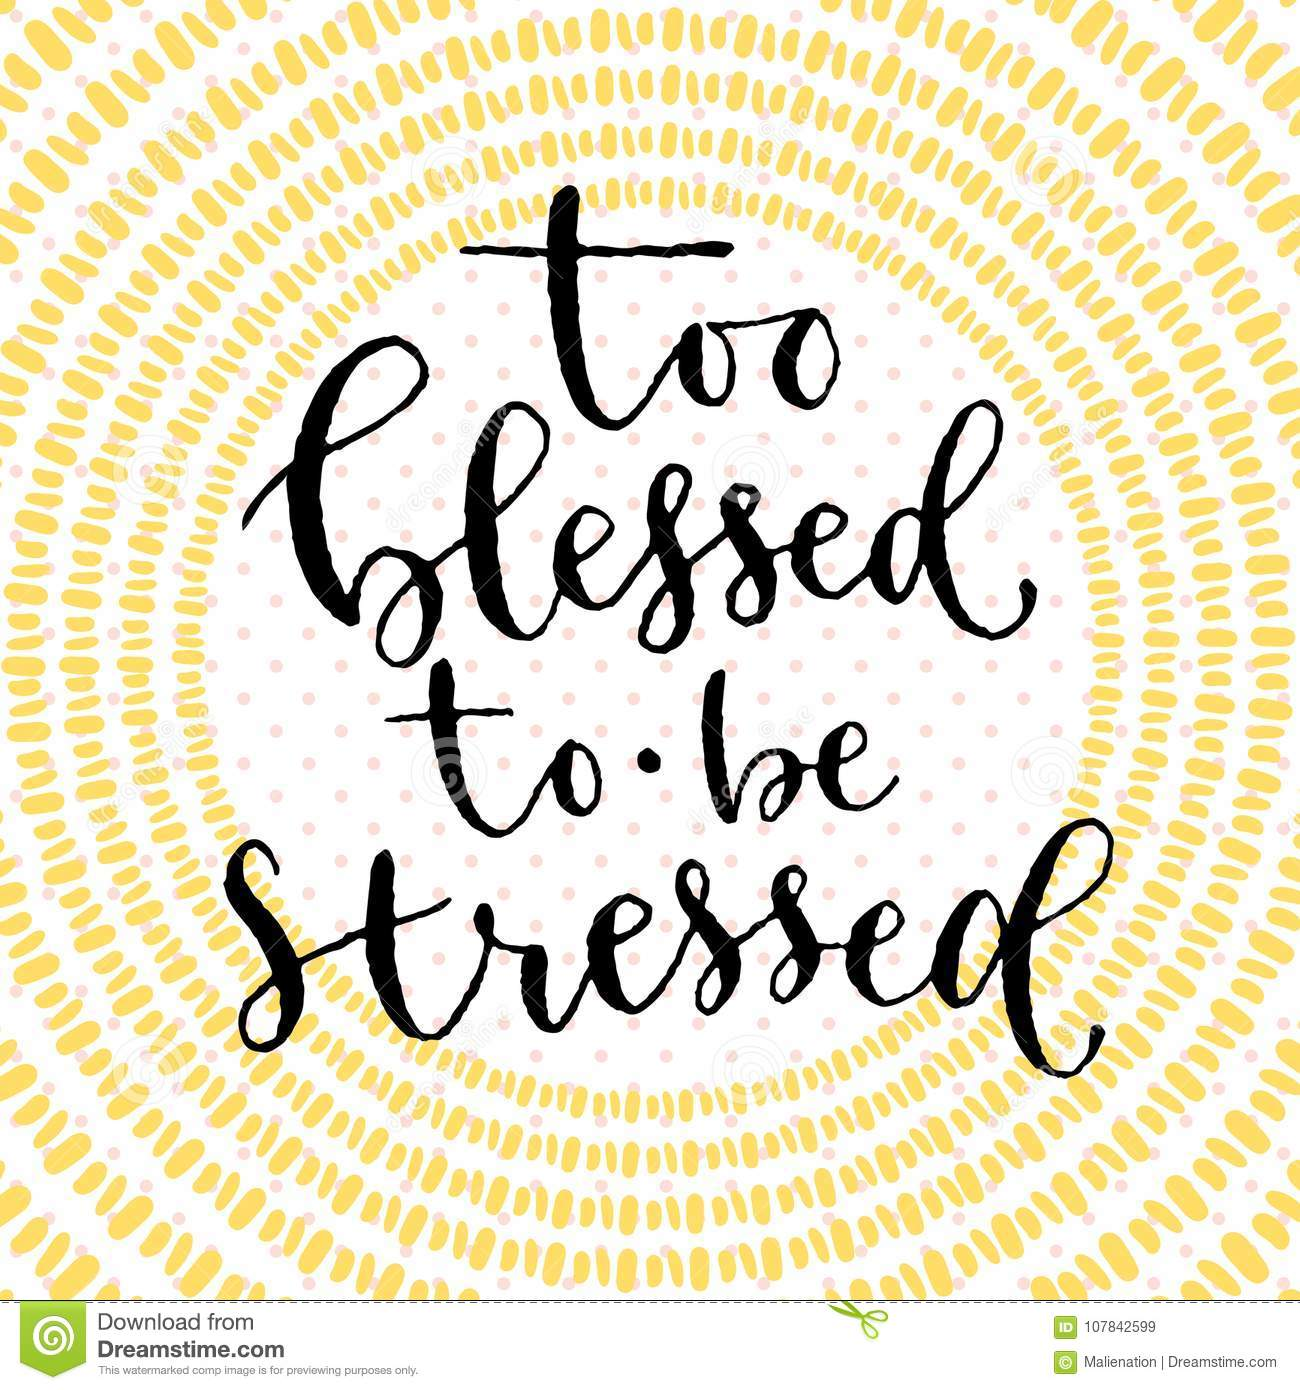 too blessed to be stressed handwritten greeting card design